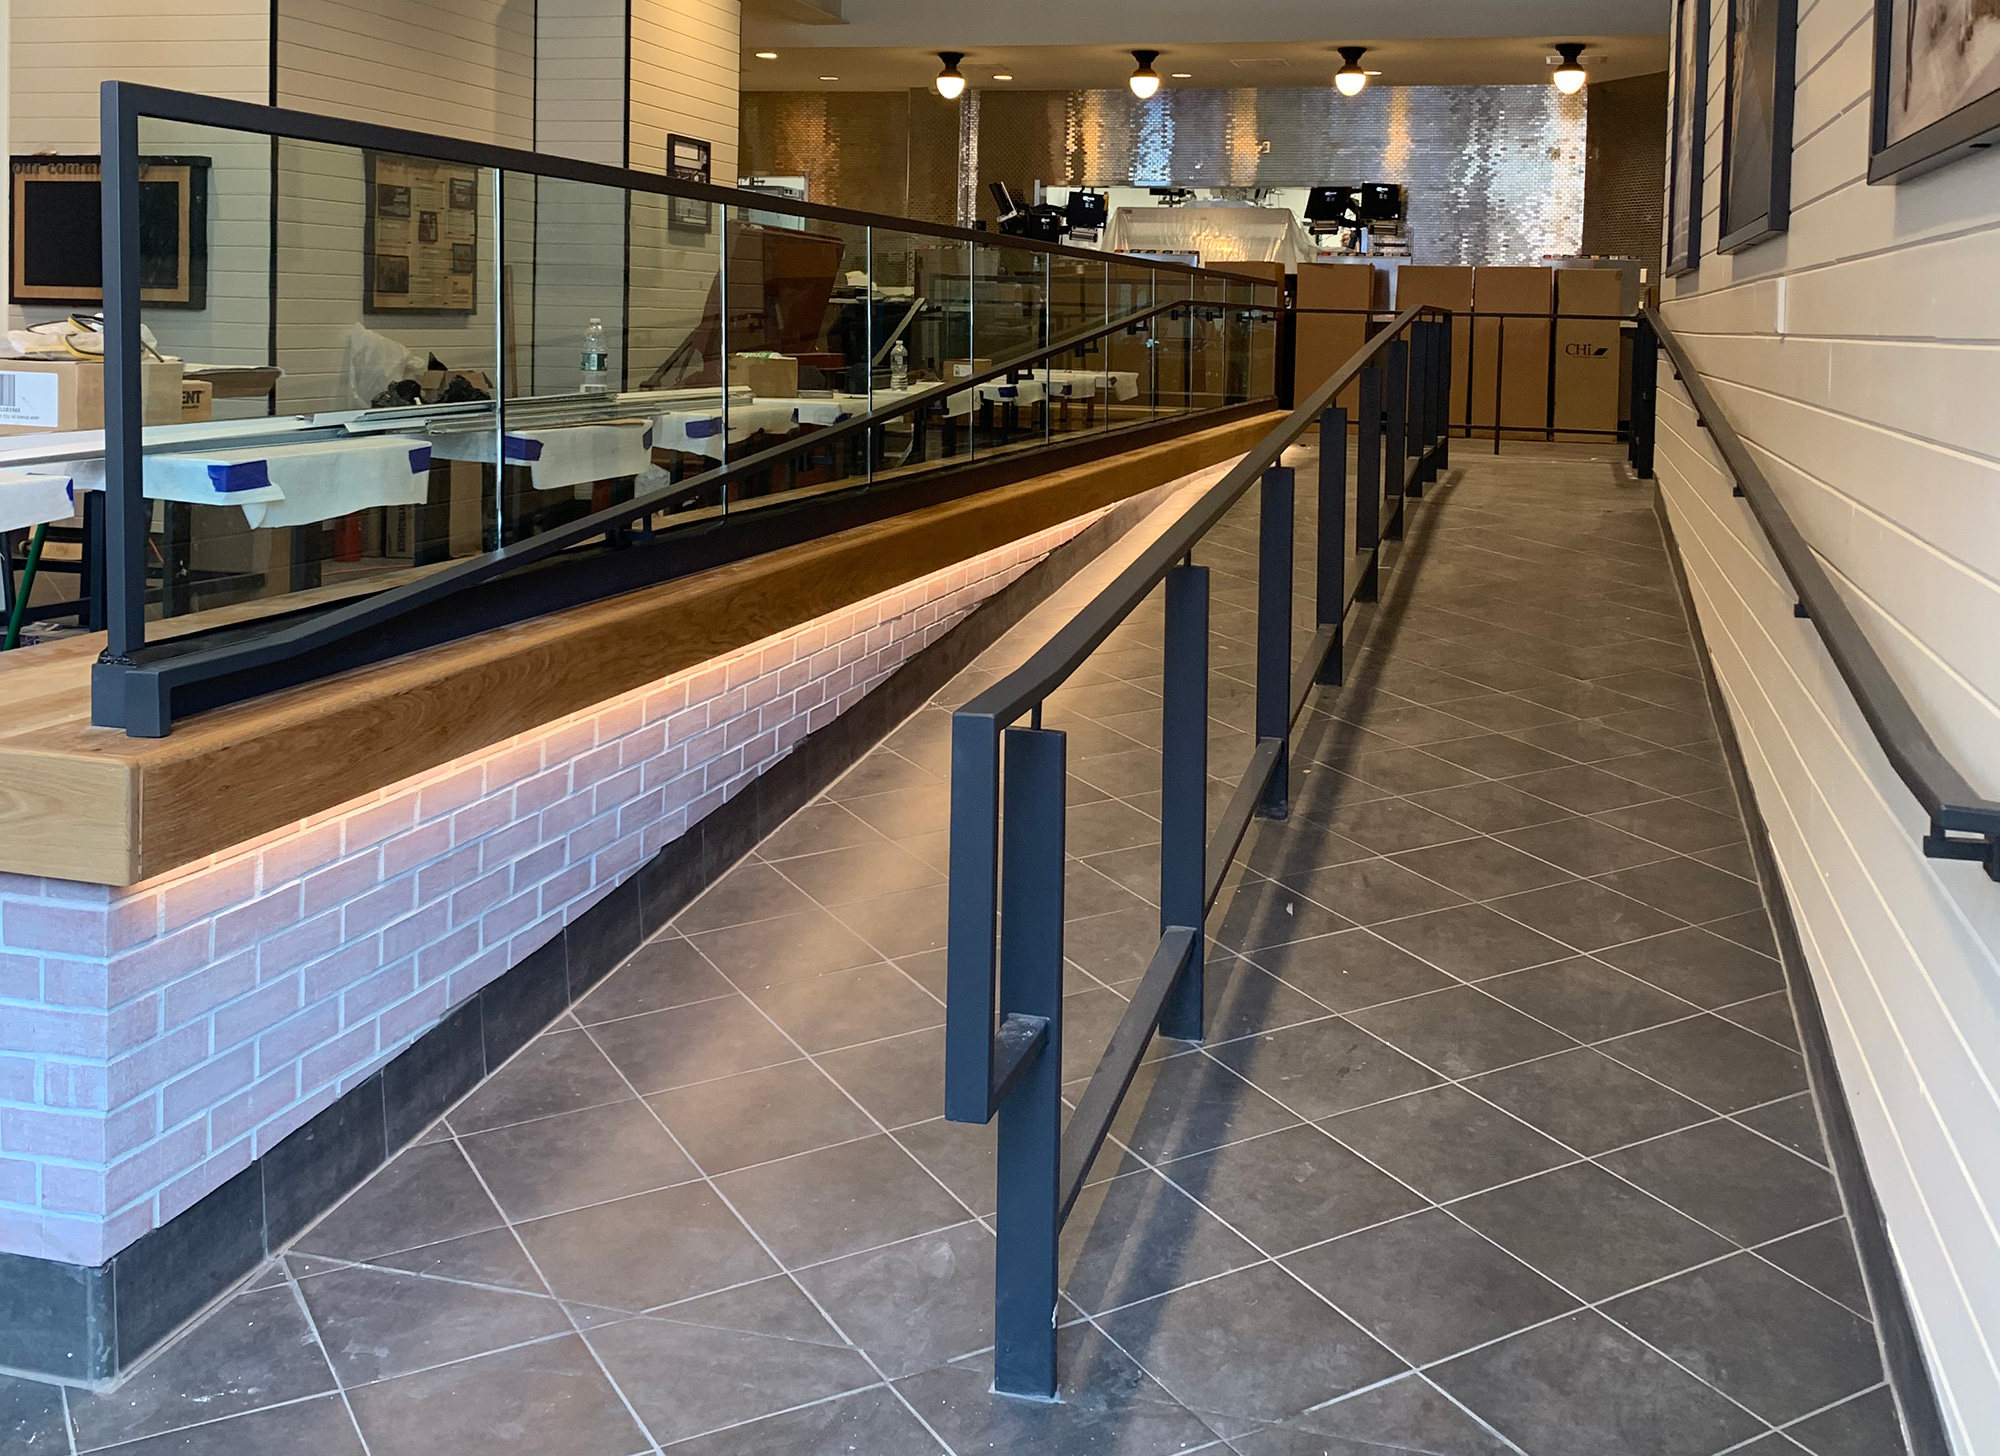 Glass Partitions & Railings - Chick-fil-A,  Brooklyn, NY